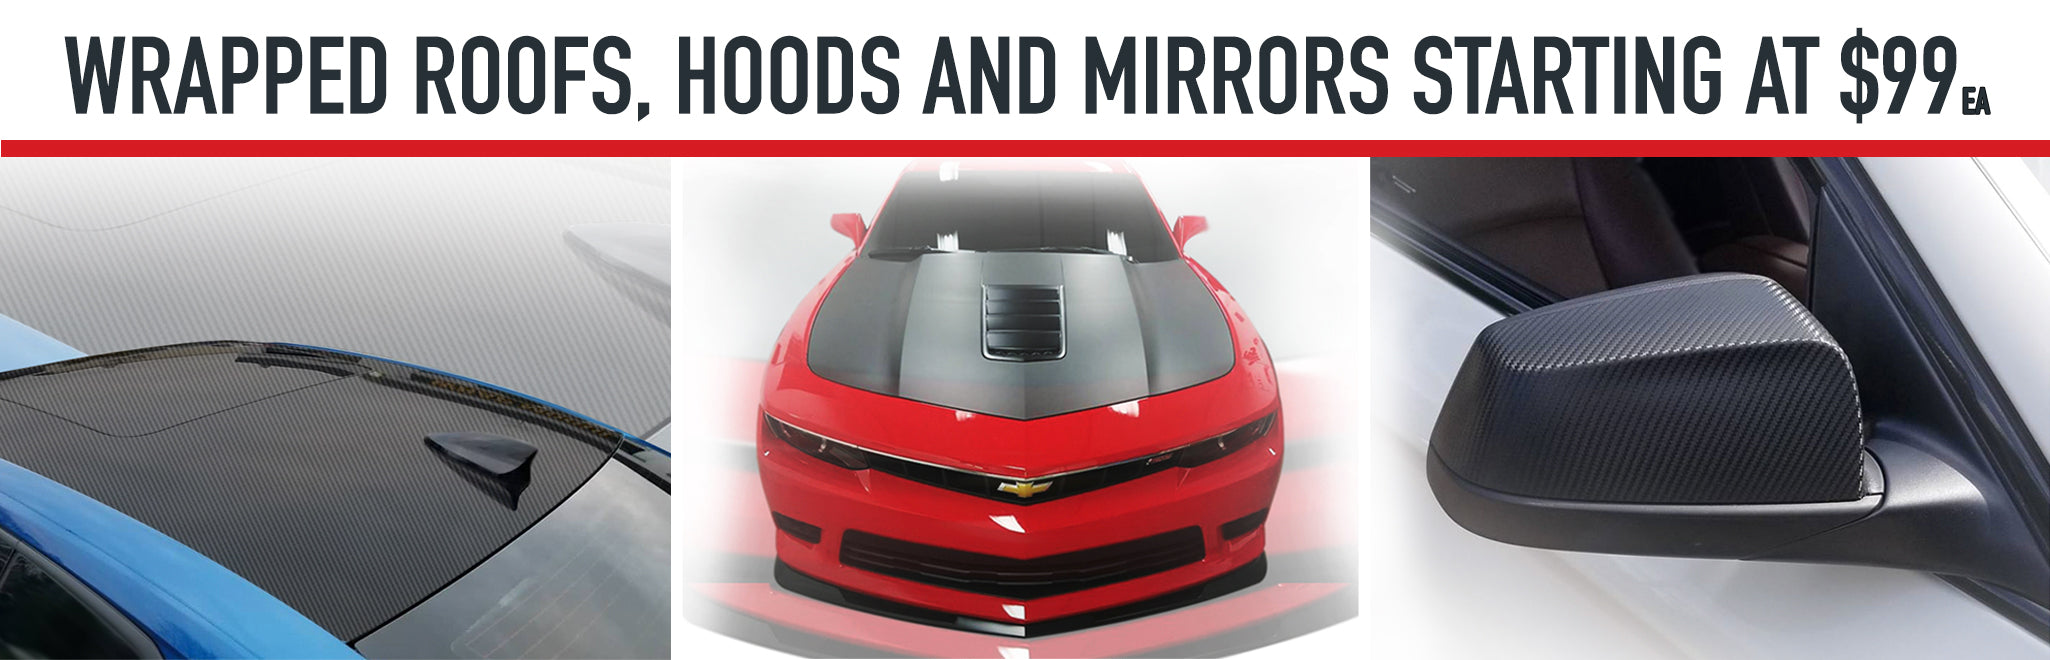 Roof Hood and mirror wraps